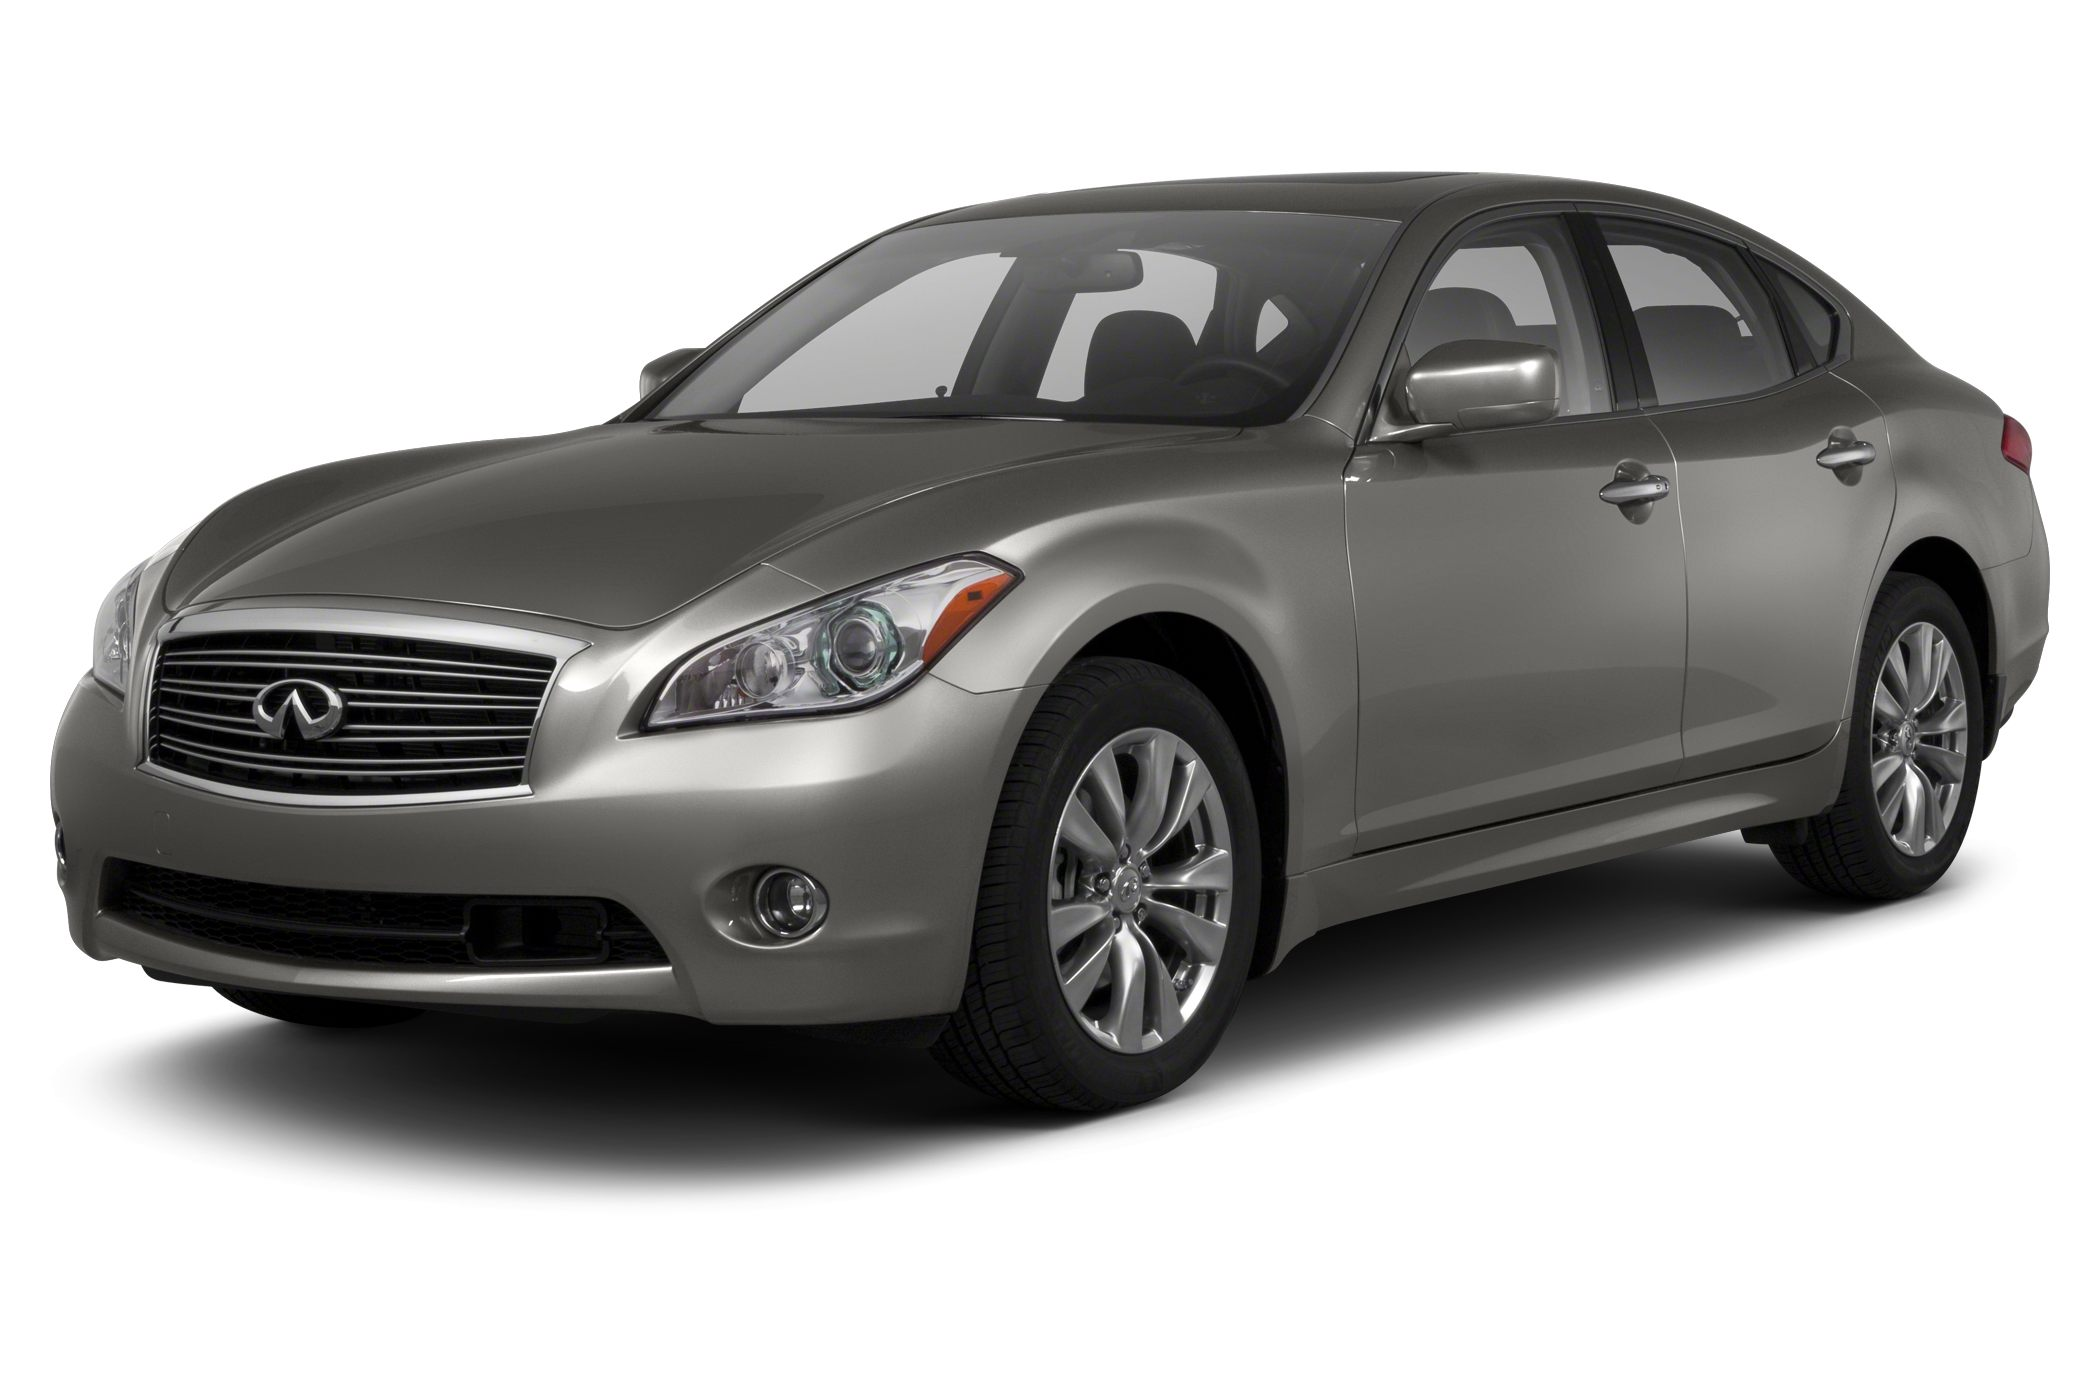 2013 Infiniti M56x